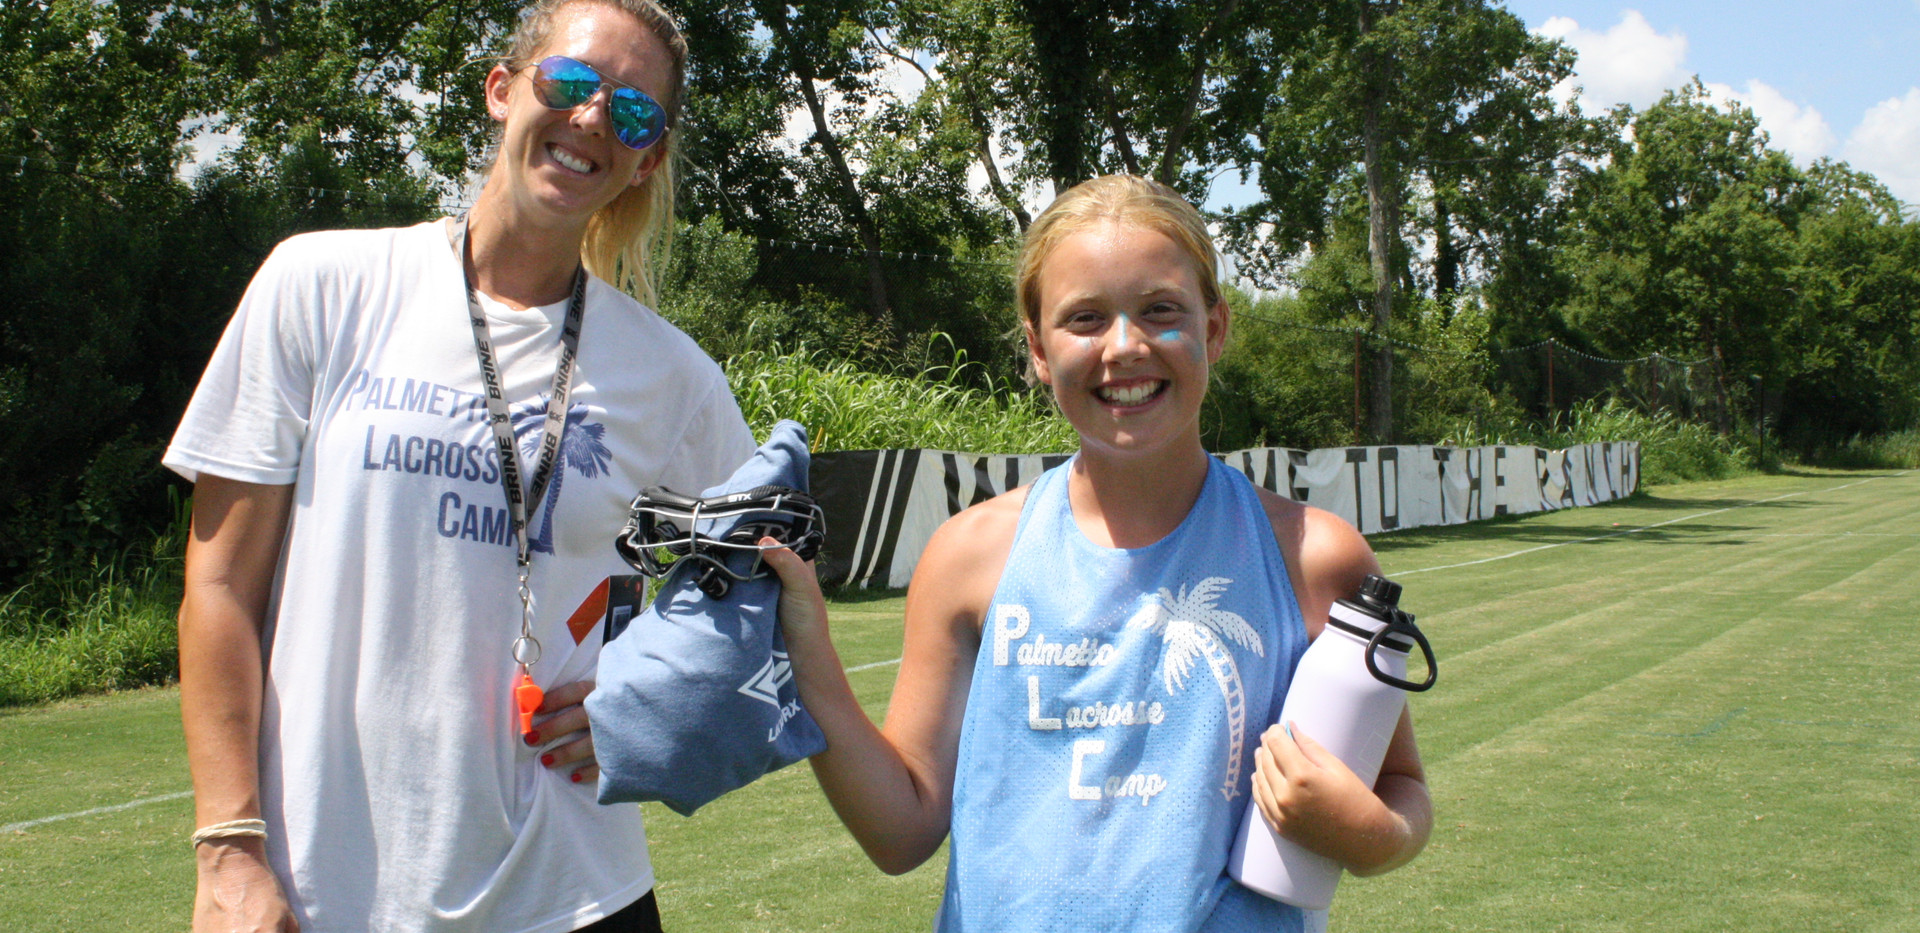 raffle-charleston-lacrosse-summer-camp